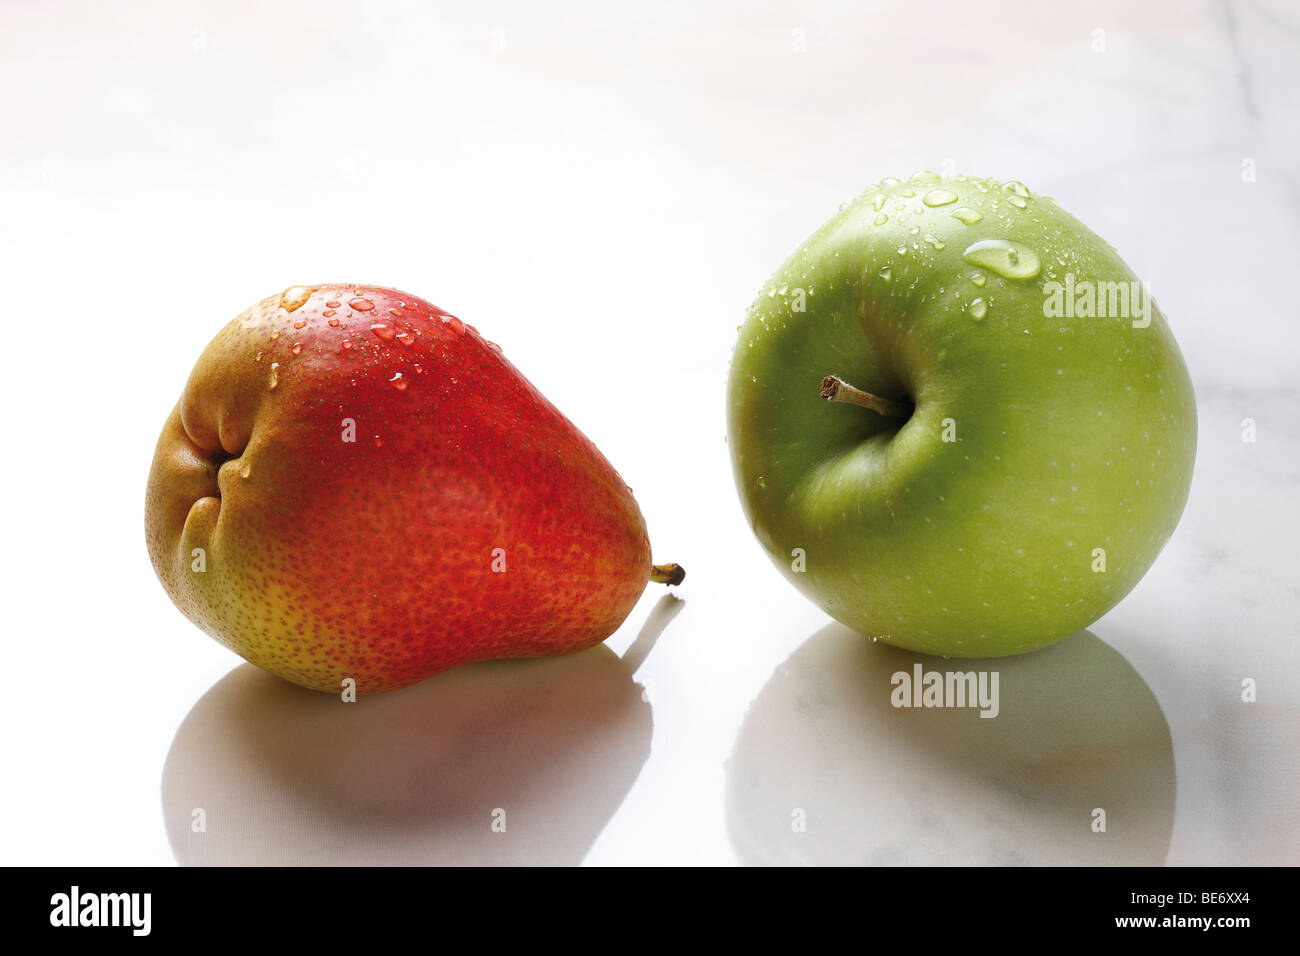 Pear and apple Stock Photo